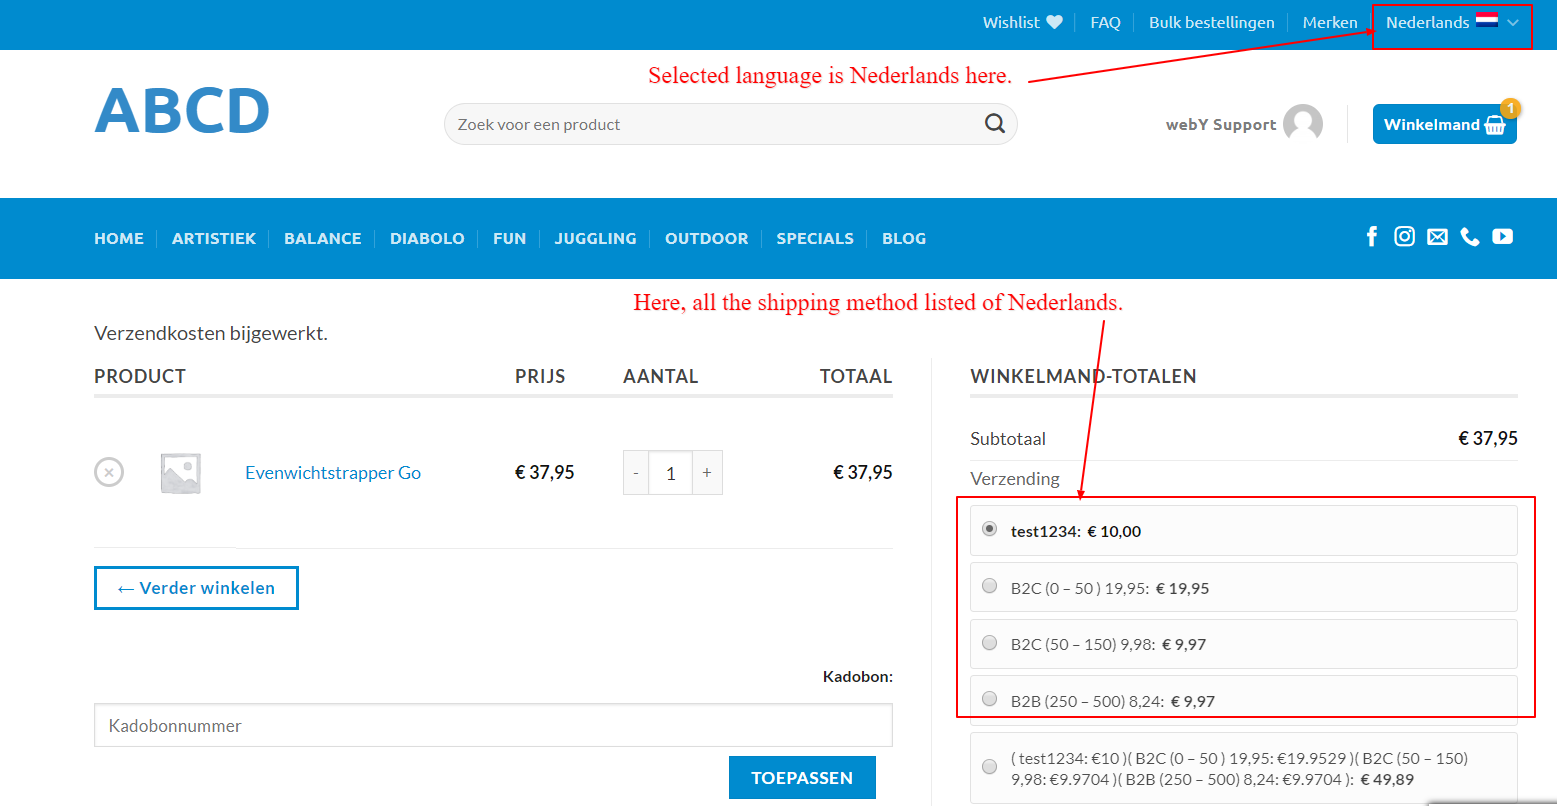 View the shipping method based on the Language selected as below